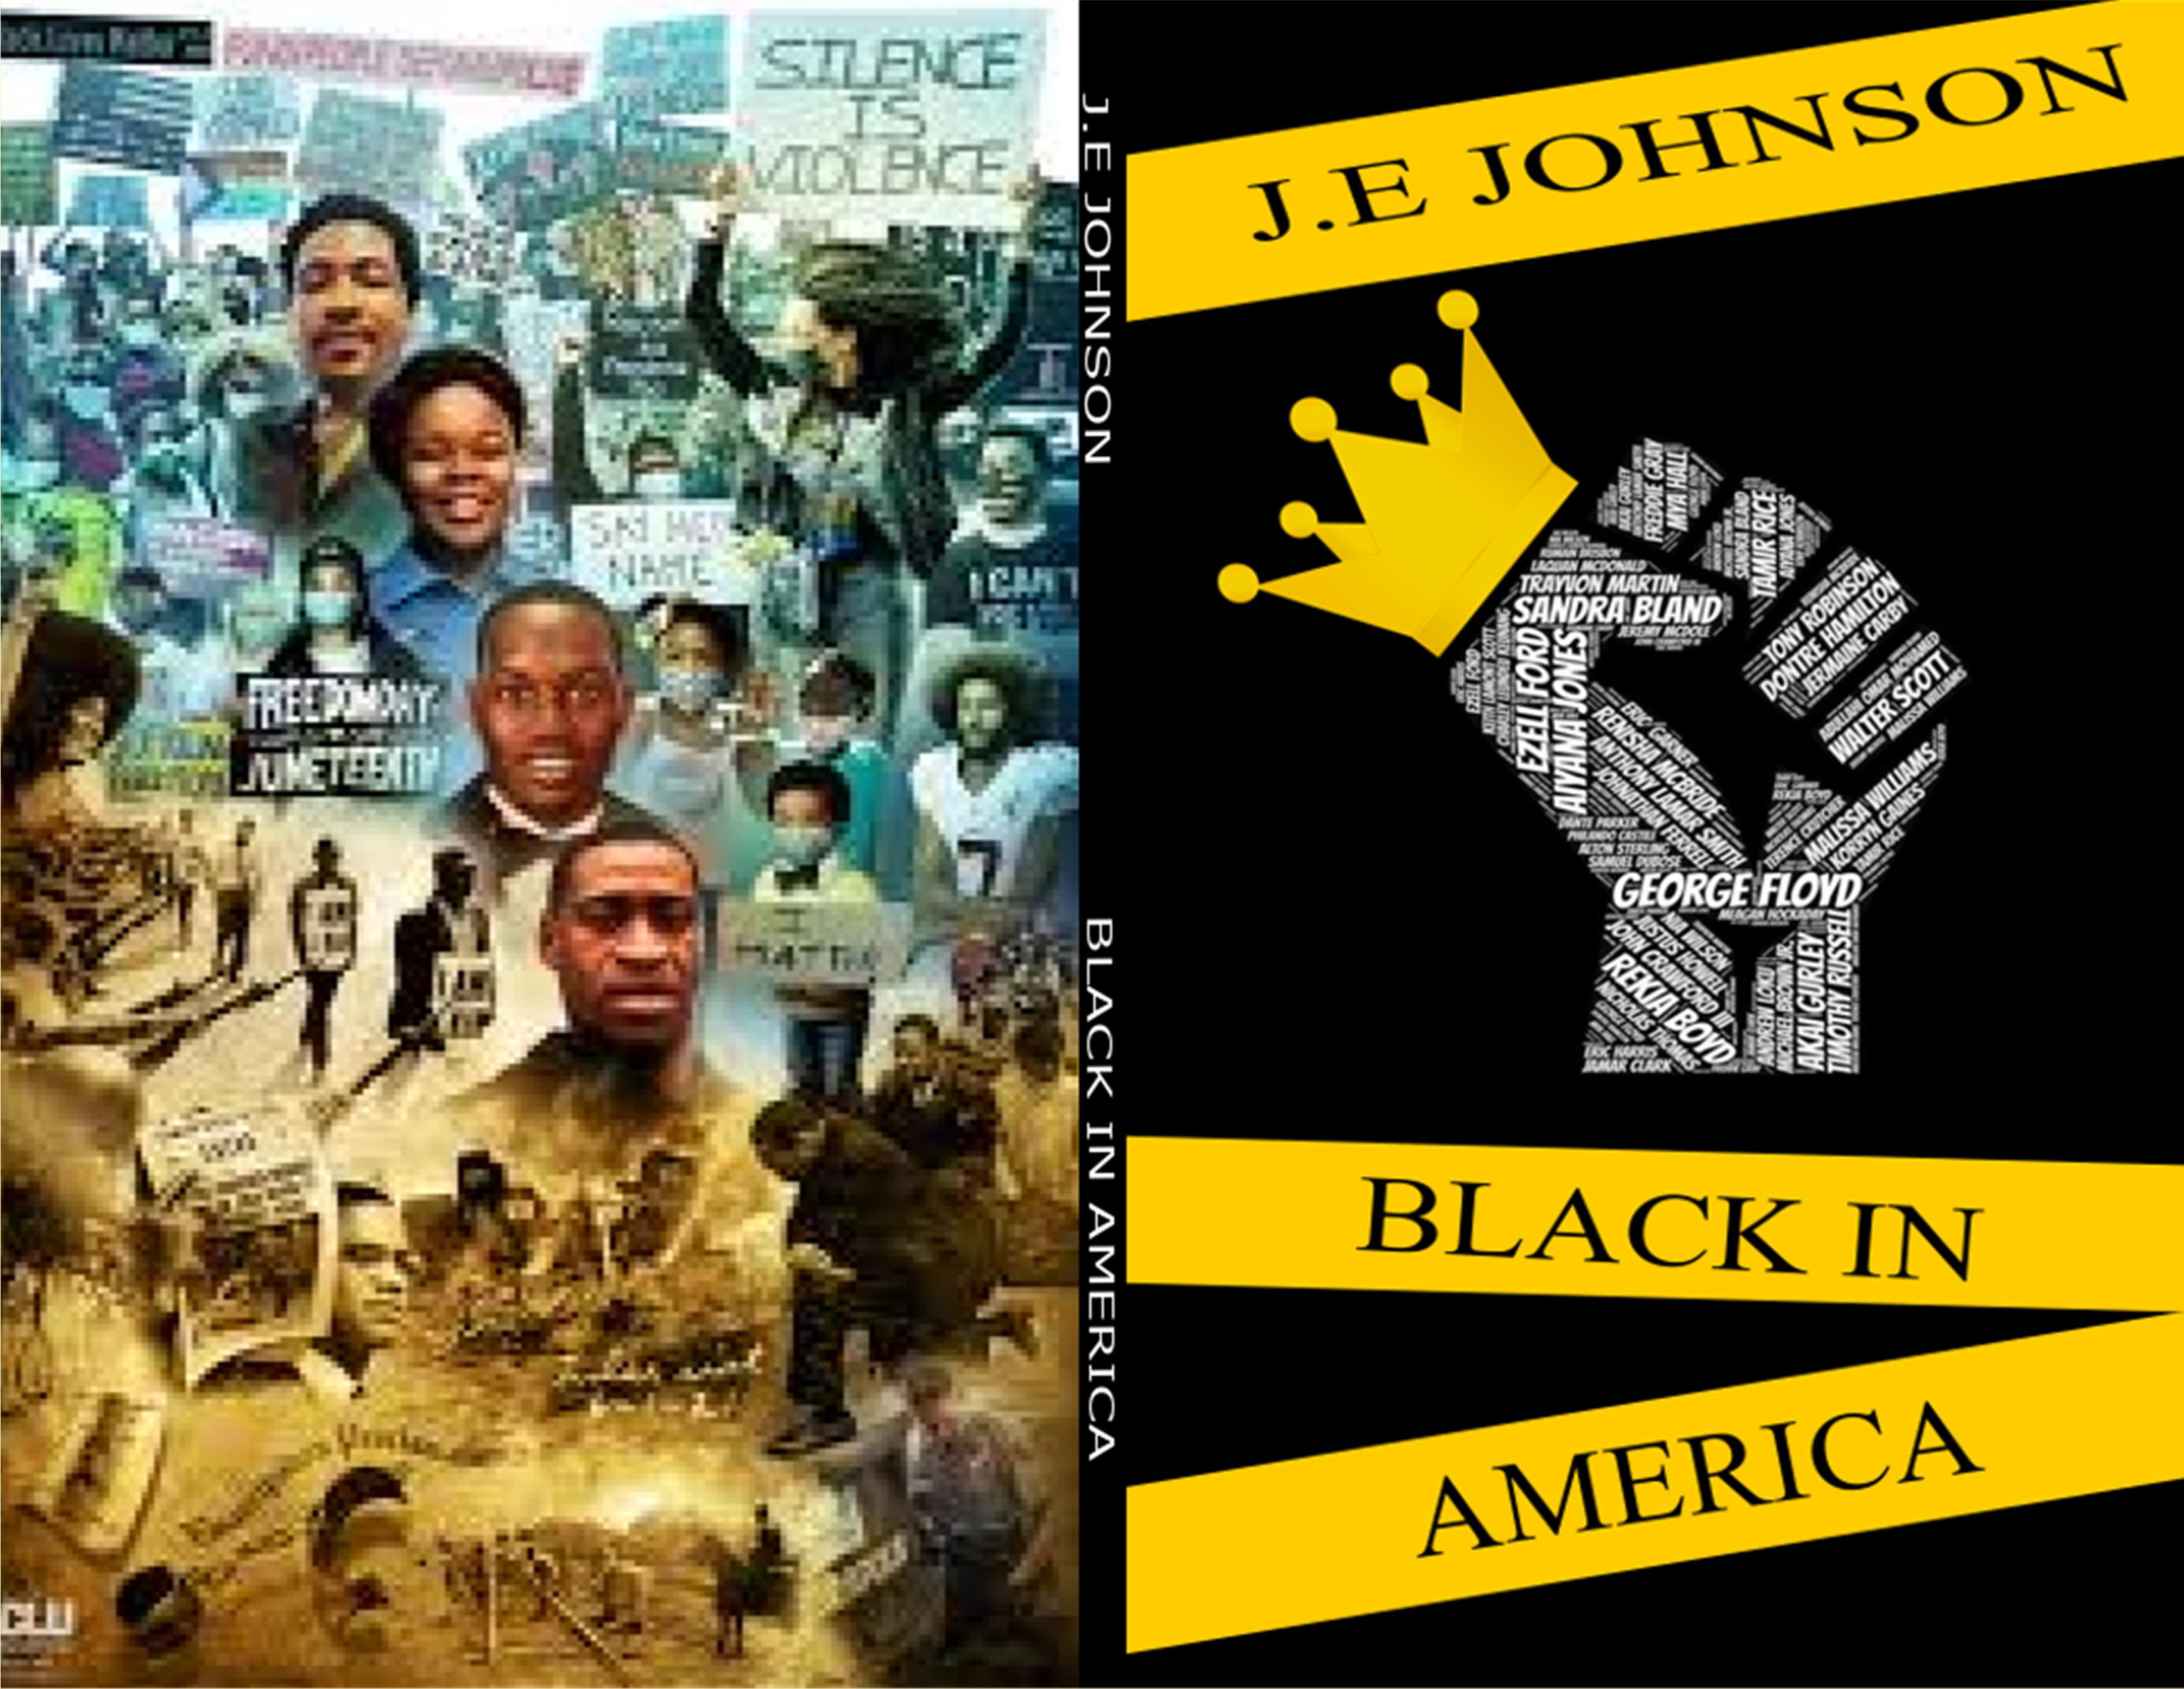 Black in America cover image